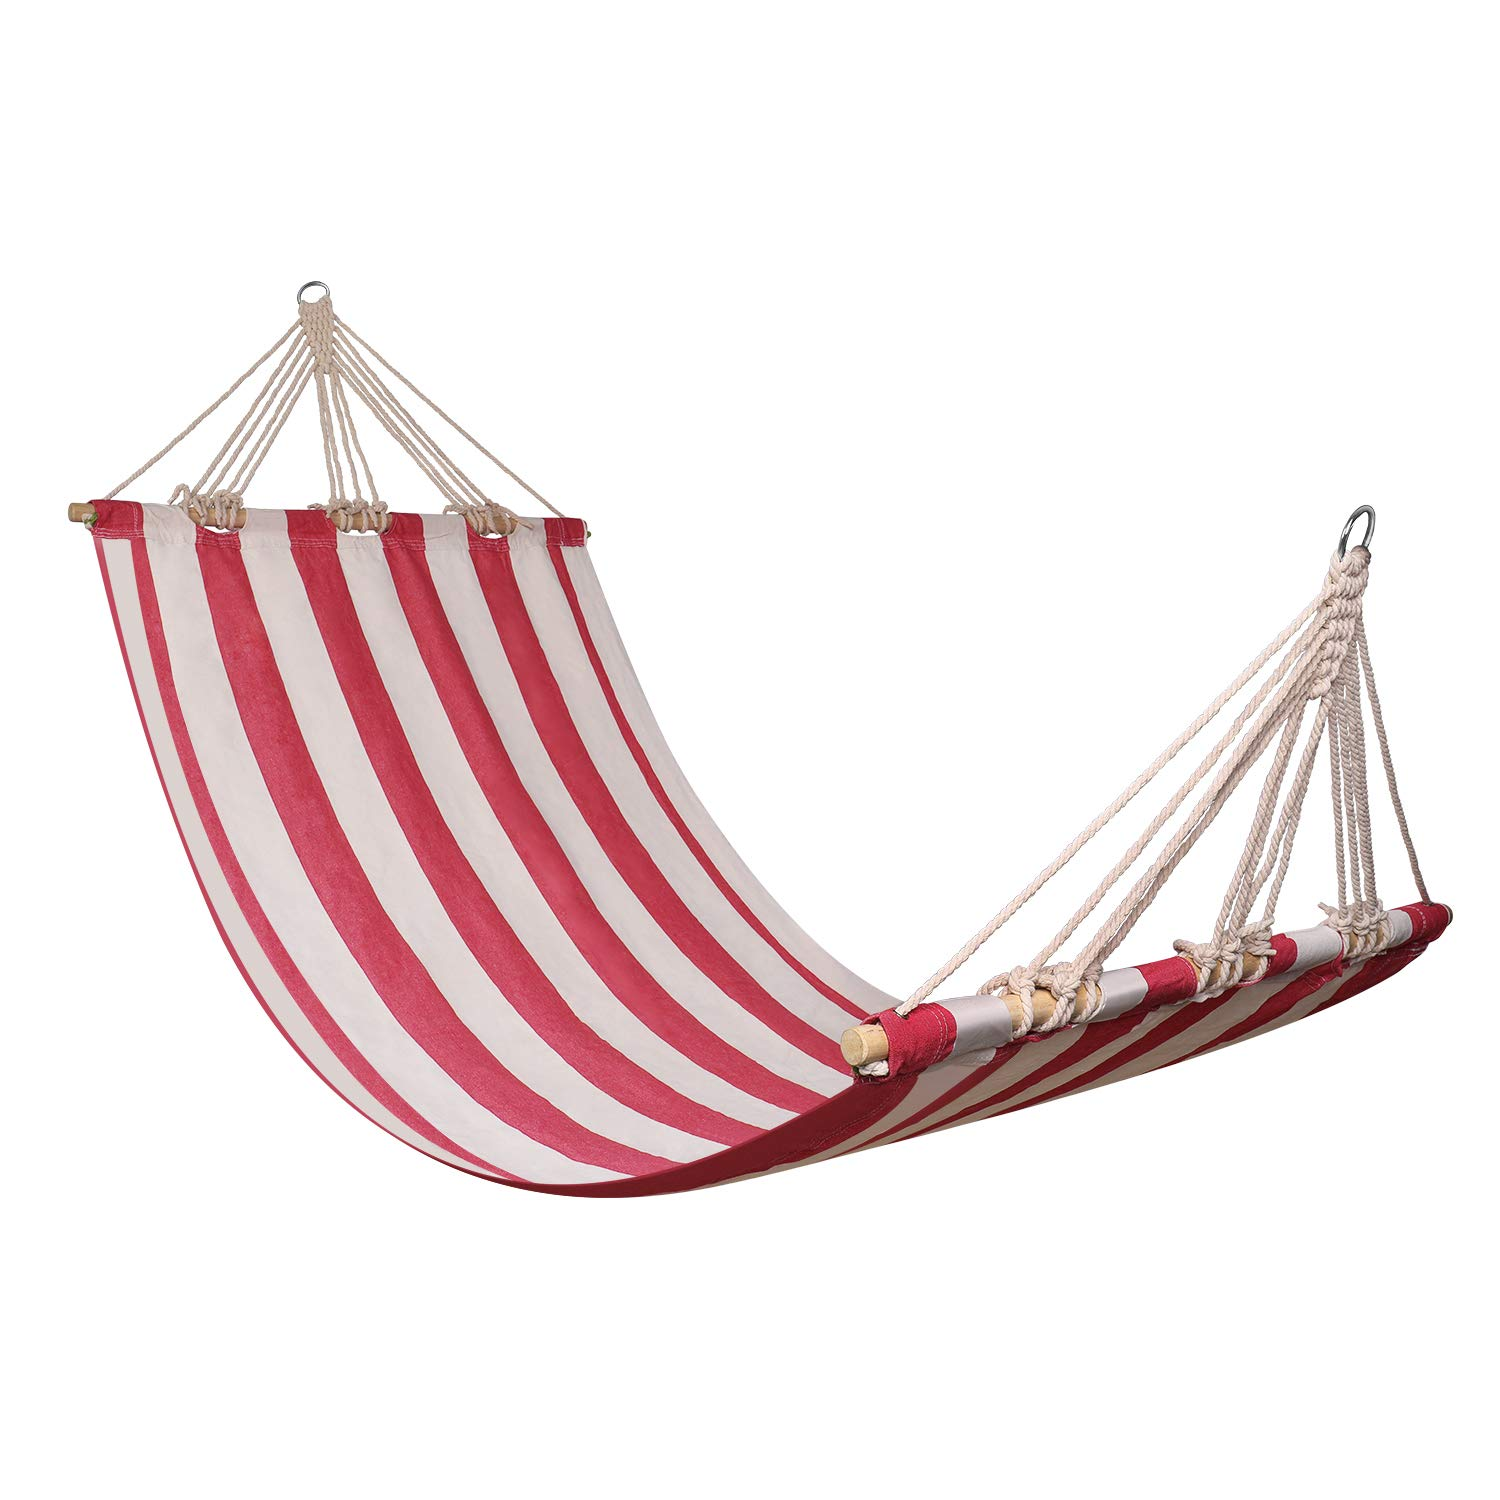 Flexzion Portable Swing Hammocks, Ultralight Leisure Hanging Canvas Hammock with Wooden Spreader Bars for Suspended Tree Sleeping Bed Stand Camping Beach Outdoor Garden Patio Travel Red White Stripes